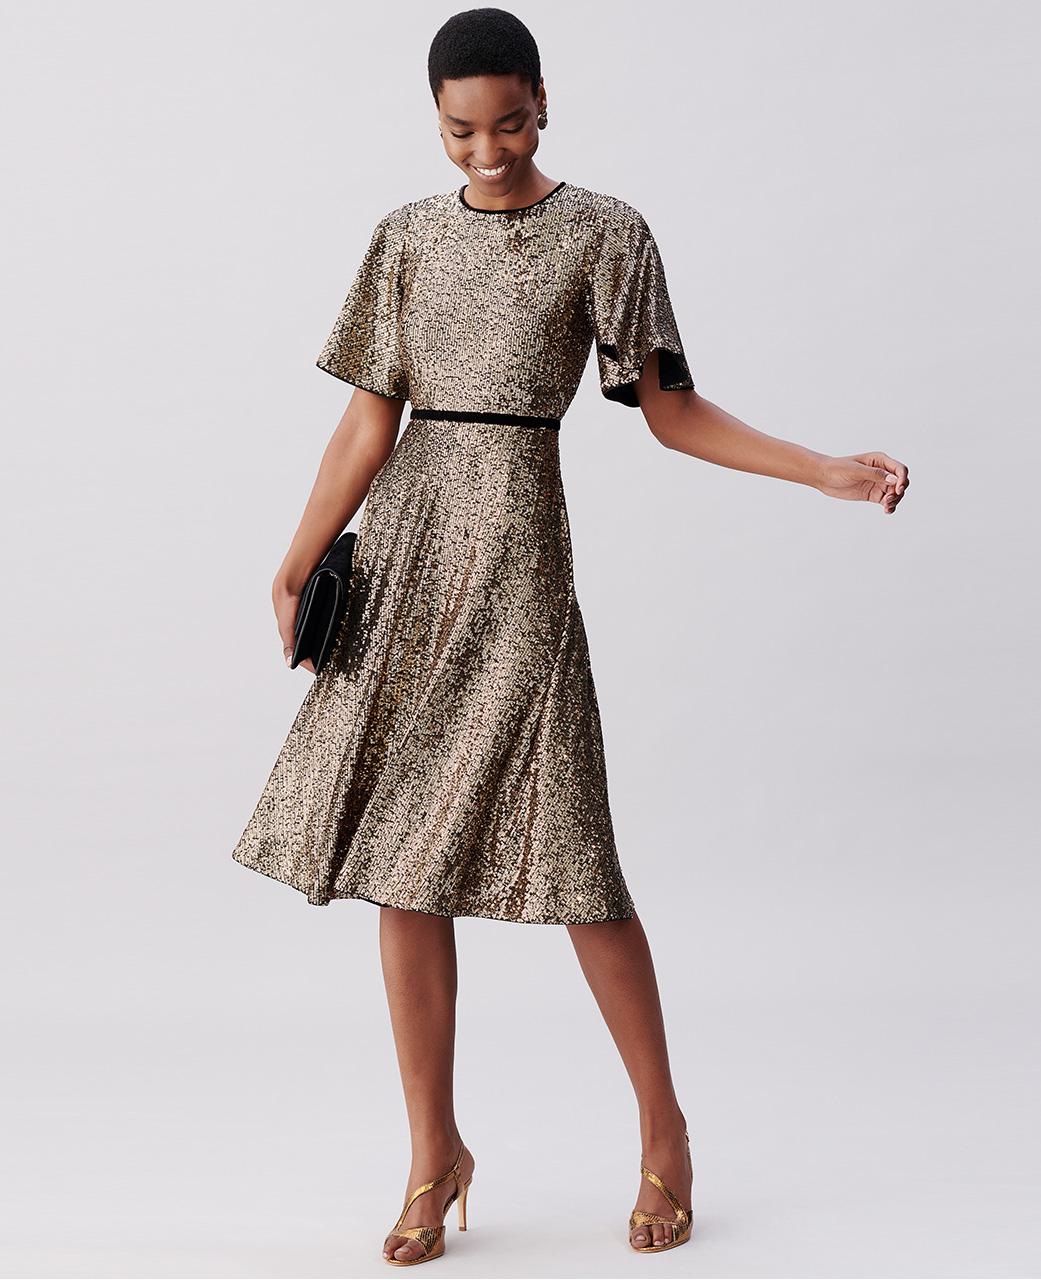 Gold Sequin Midi Dress with Black Clutch Bag and Gold Sandals